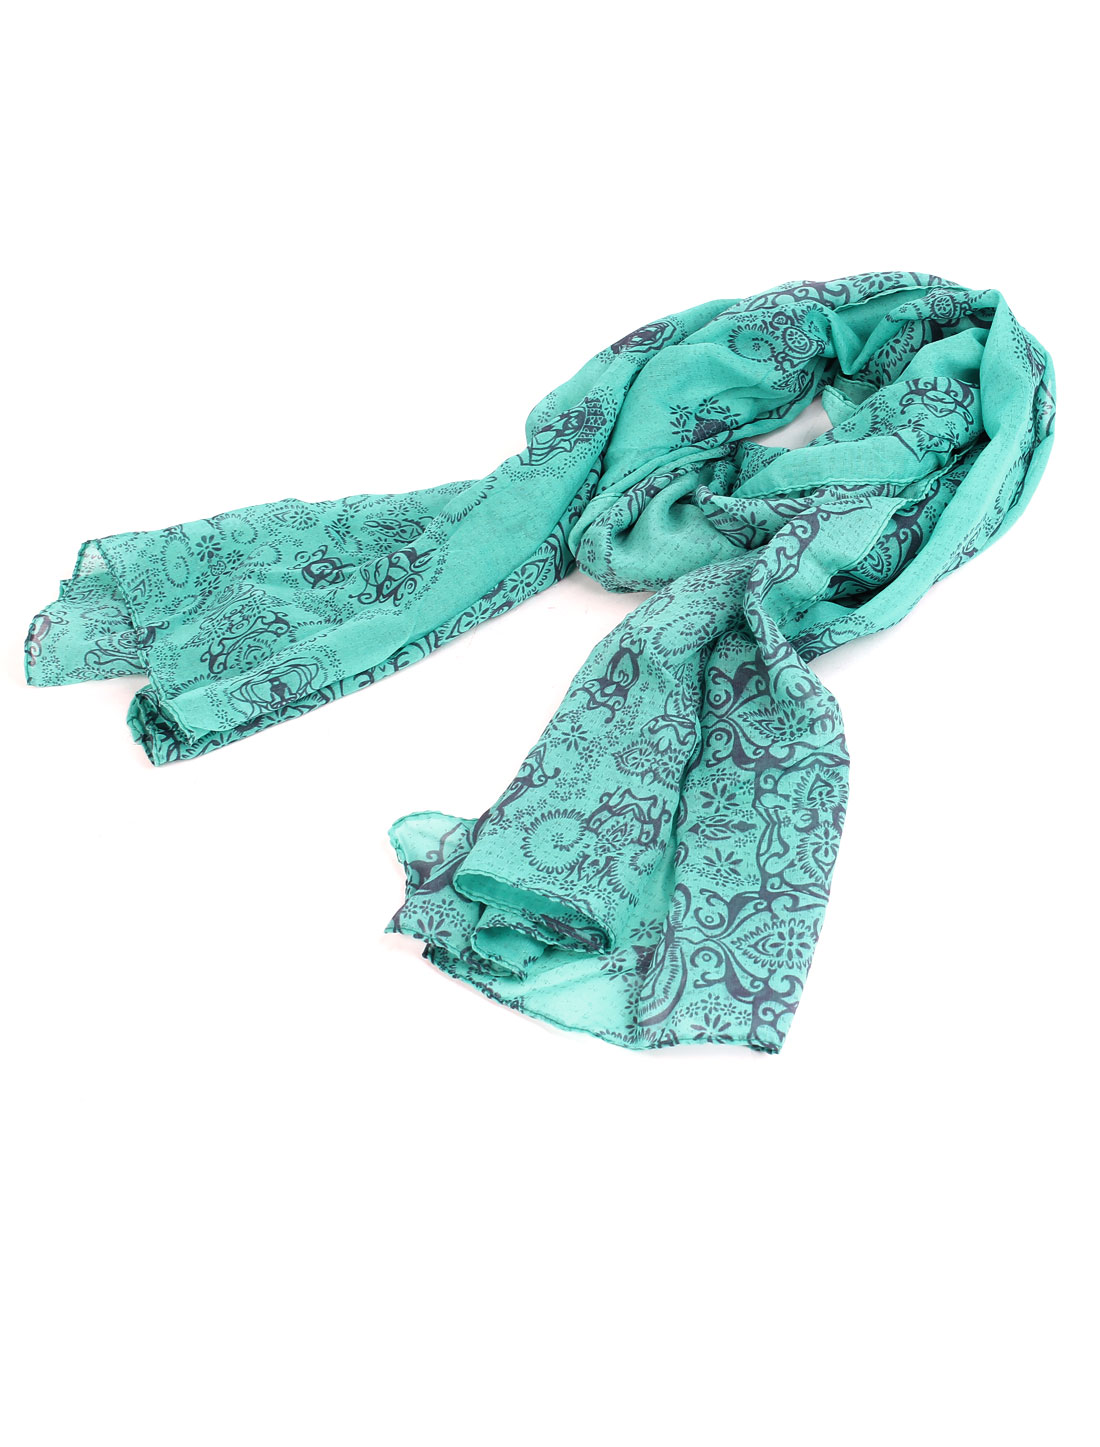 Gray Green Porcelain Print National Style Soft Gauze Scarf Shawl for Ladies